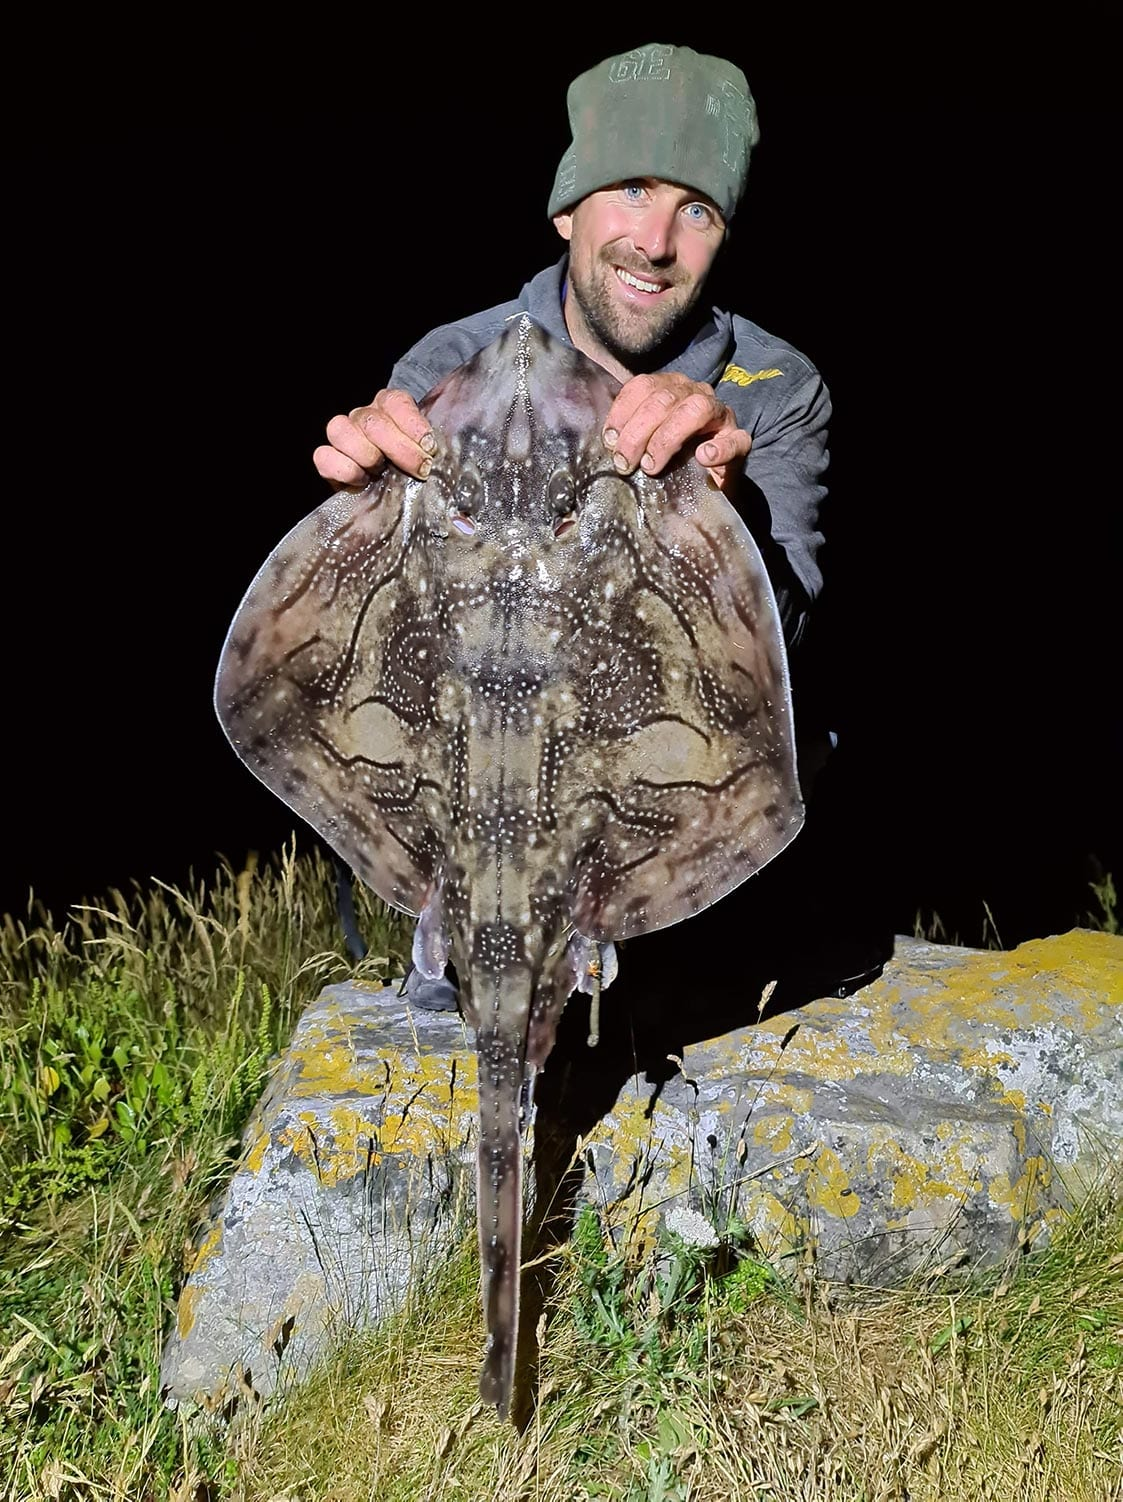 rob stammas with a purbeck shore caught undulate ray